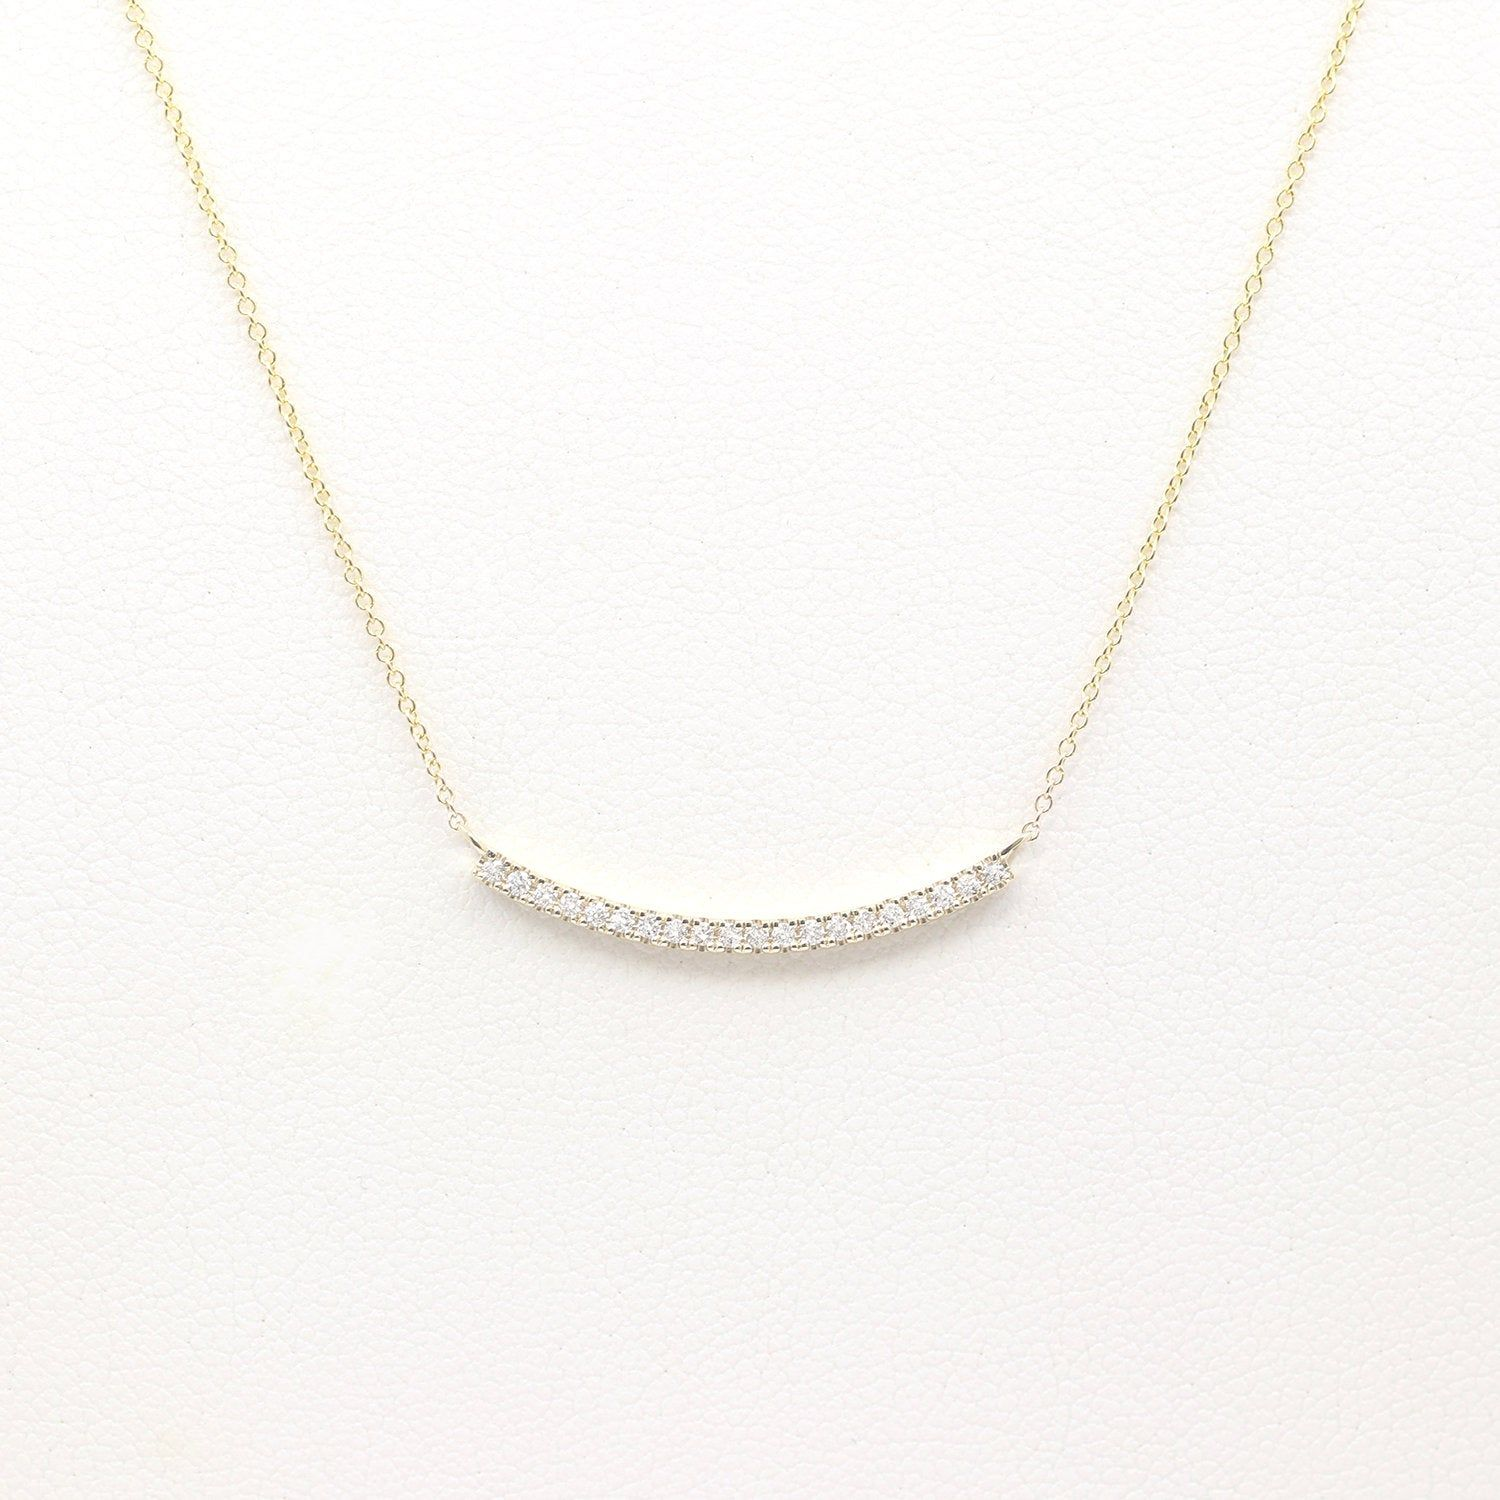 Wheat Chain; 20 inch Leslies Real 14kt Rose Gold 1mm Spiga